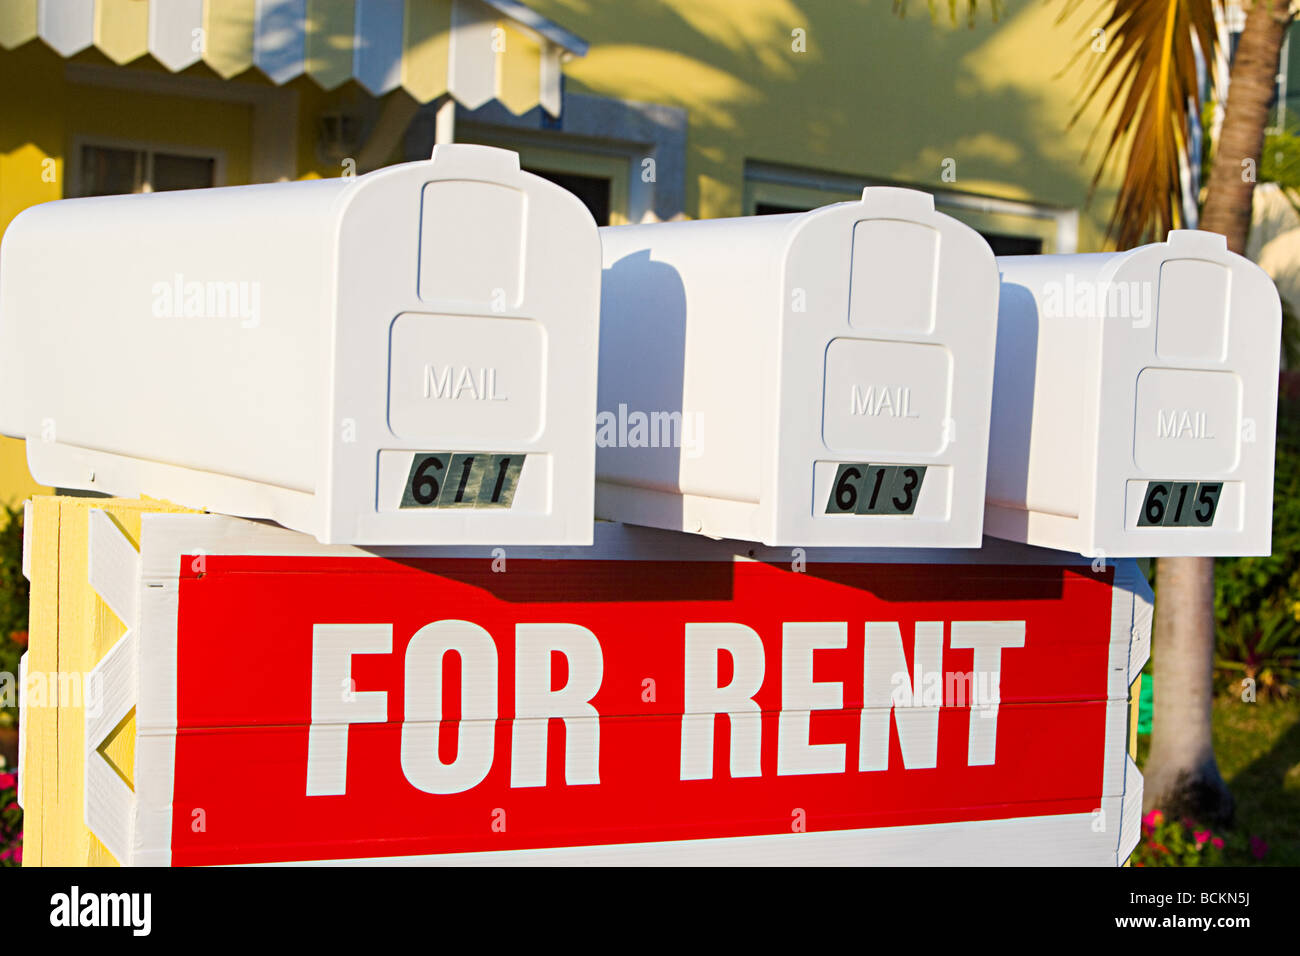 Mailboxes and for rent sign - Stock Image